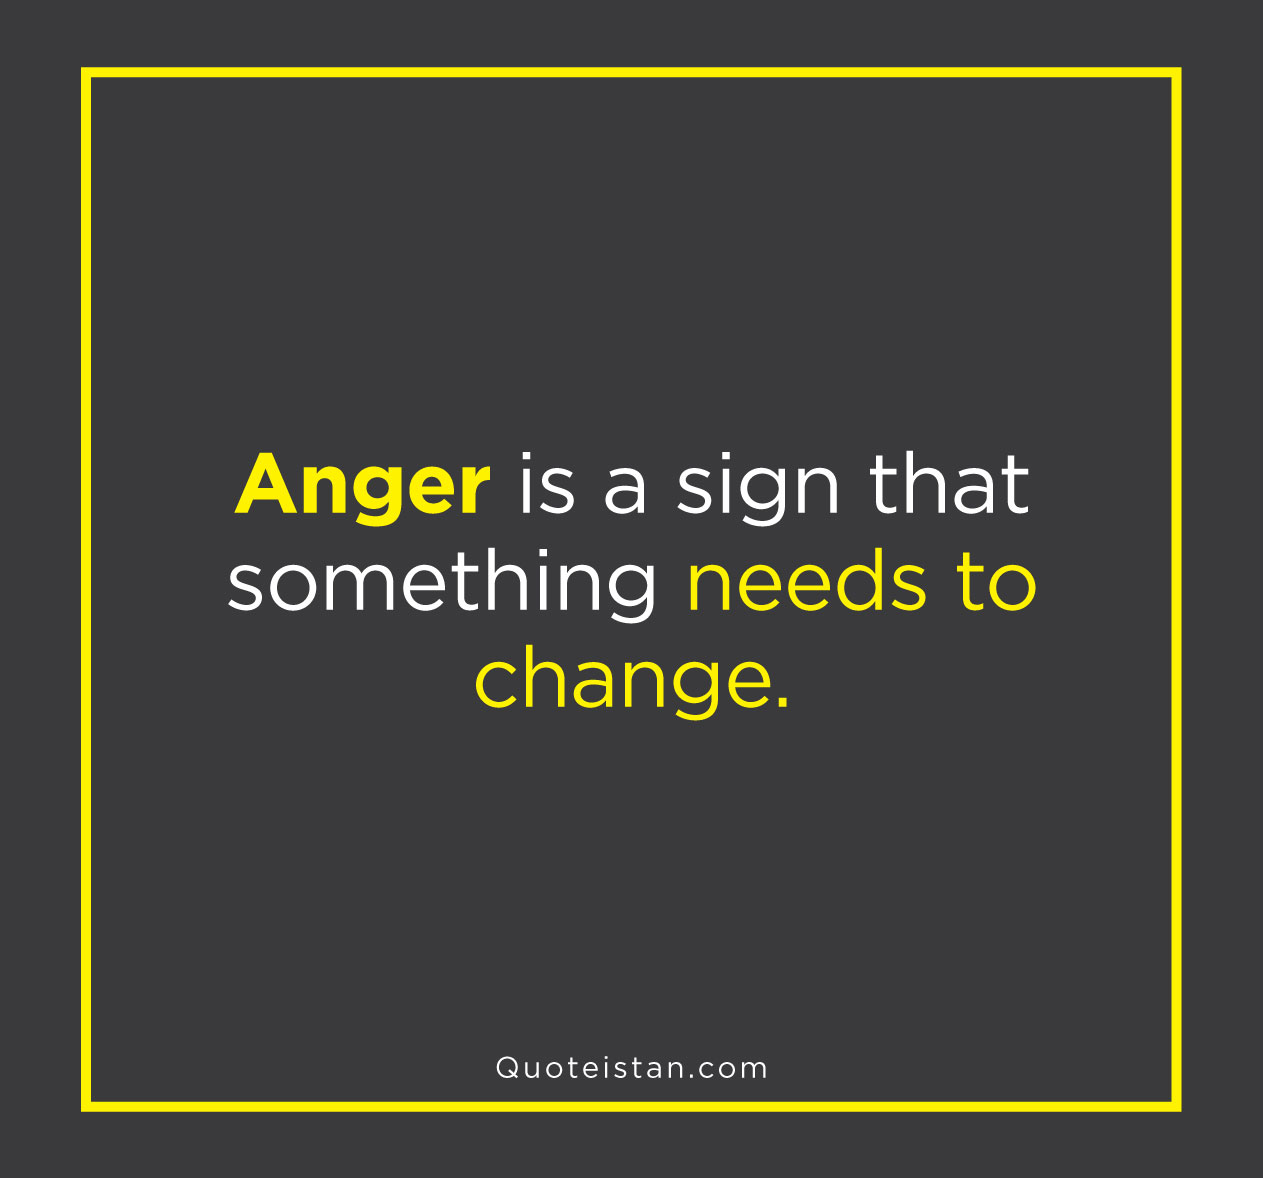 Anger is a sign that something needs to change.